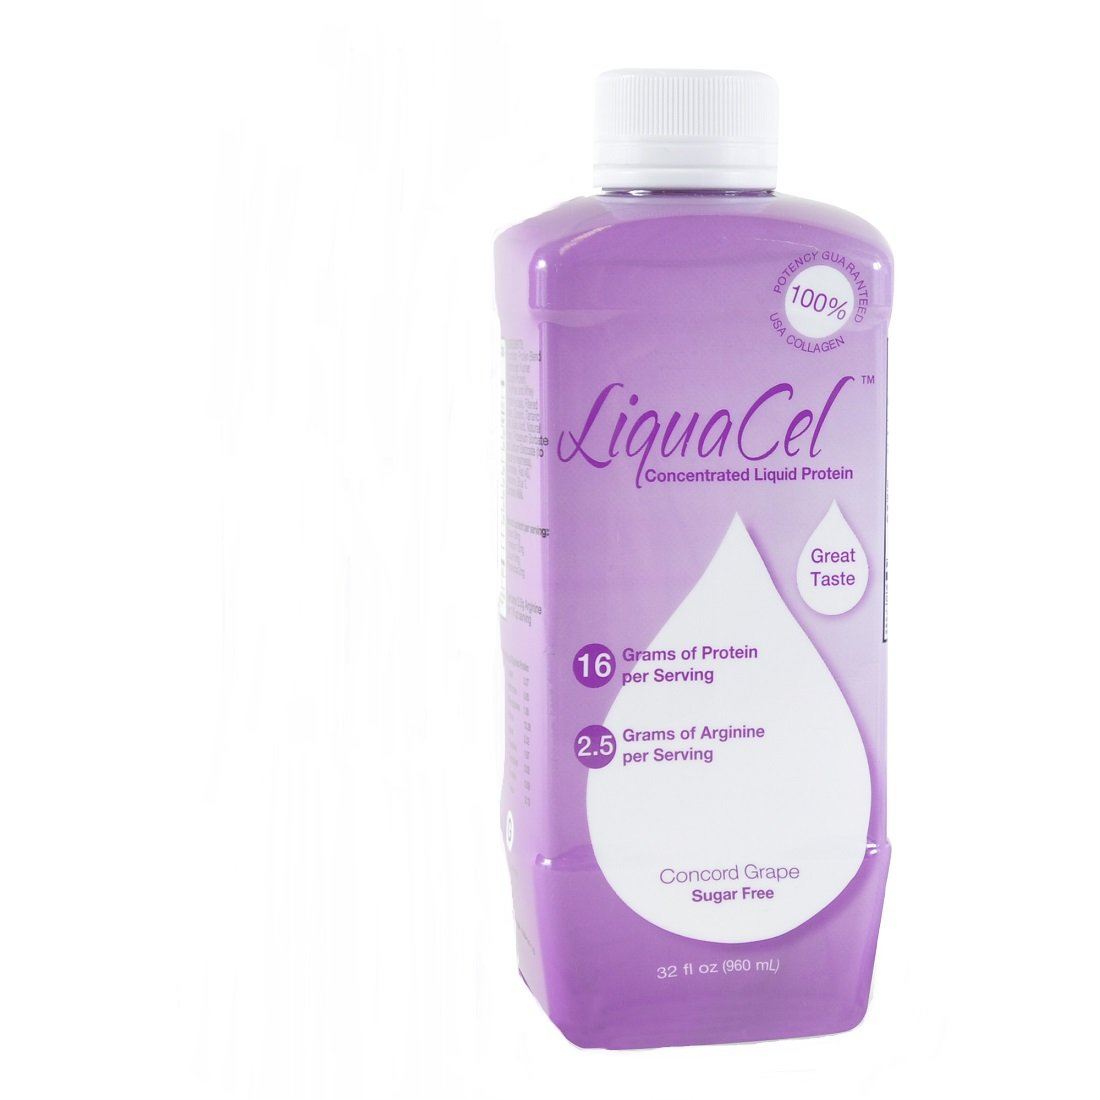 Special Pack of 3 - LiquaCel Protein (GH94) GRAPE ONLY, 32oz Bottles by Marble Medical (Image #1)